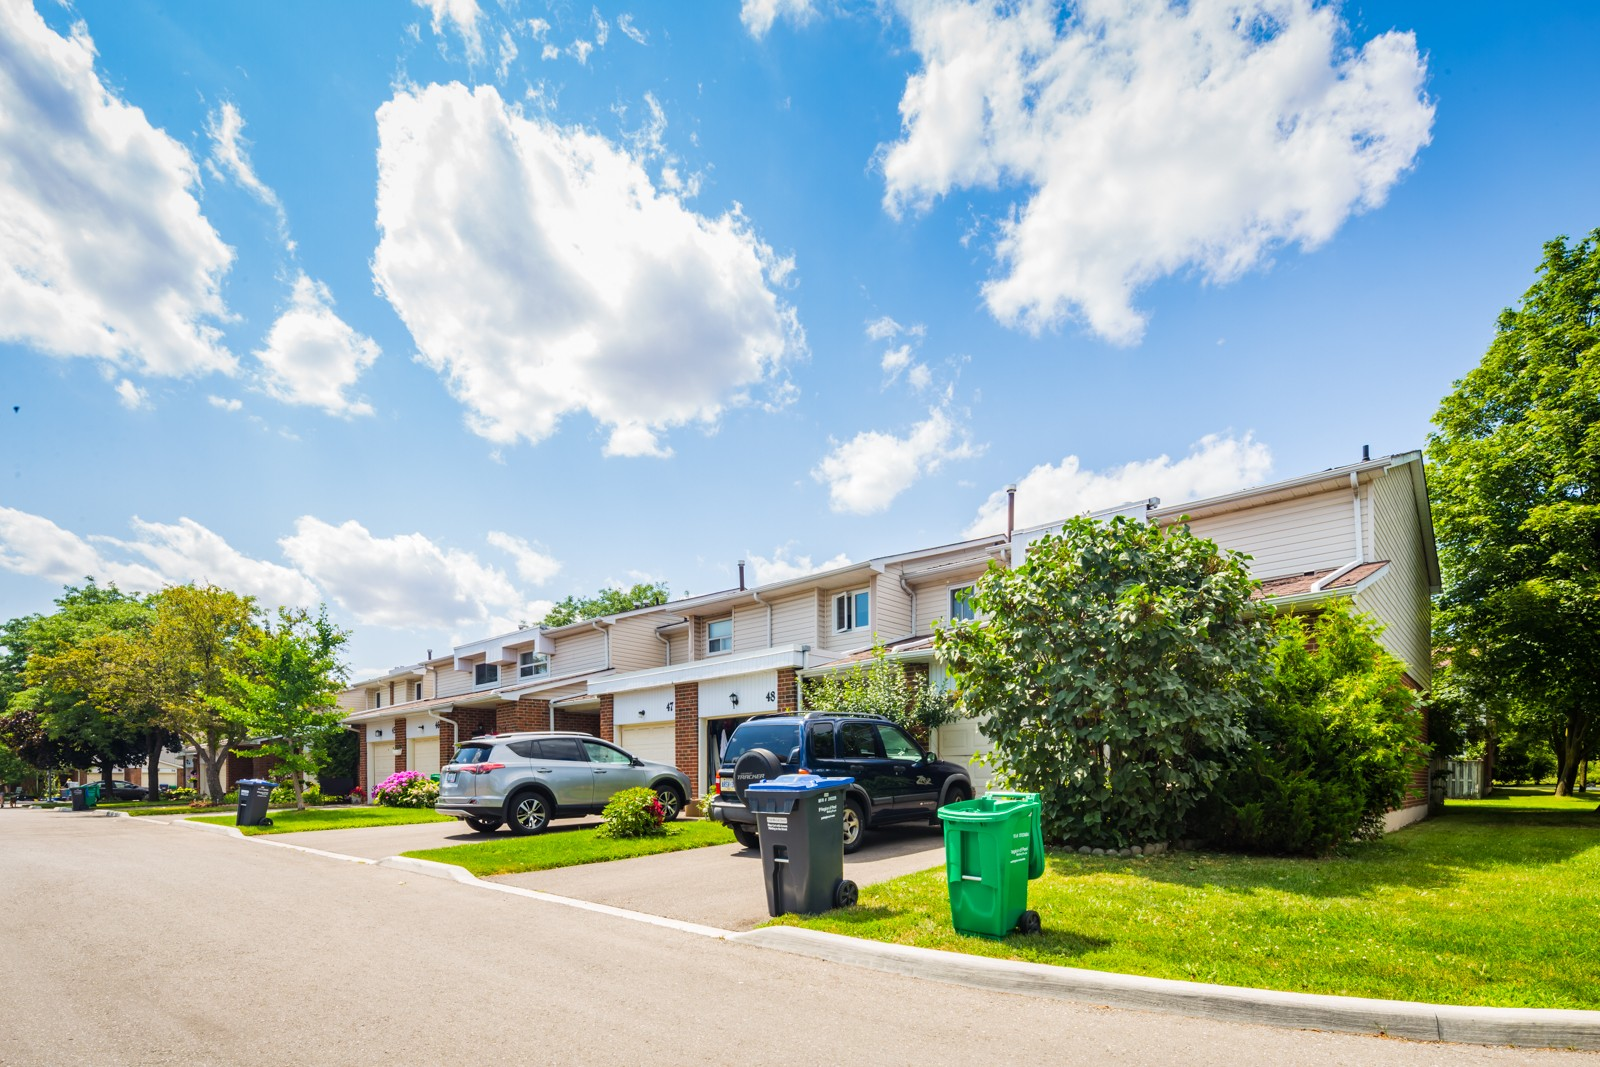 525 Meadows Boulevard Townhouses at 525 Meadows Blvd, Mississauga 1